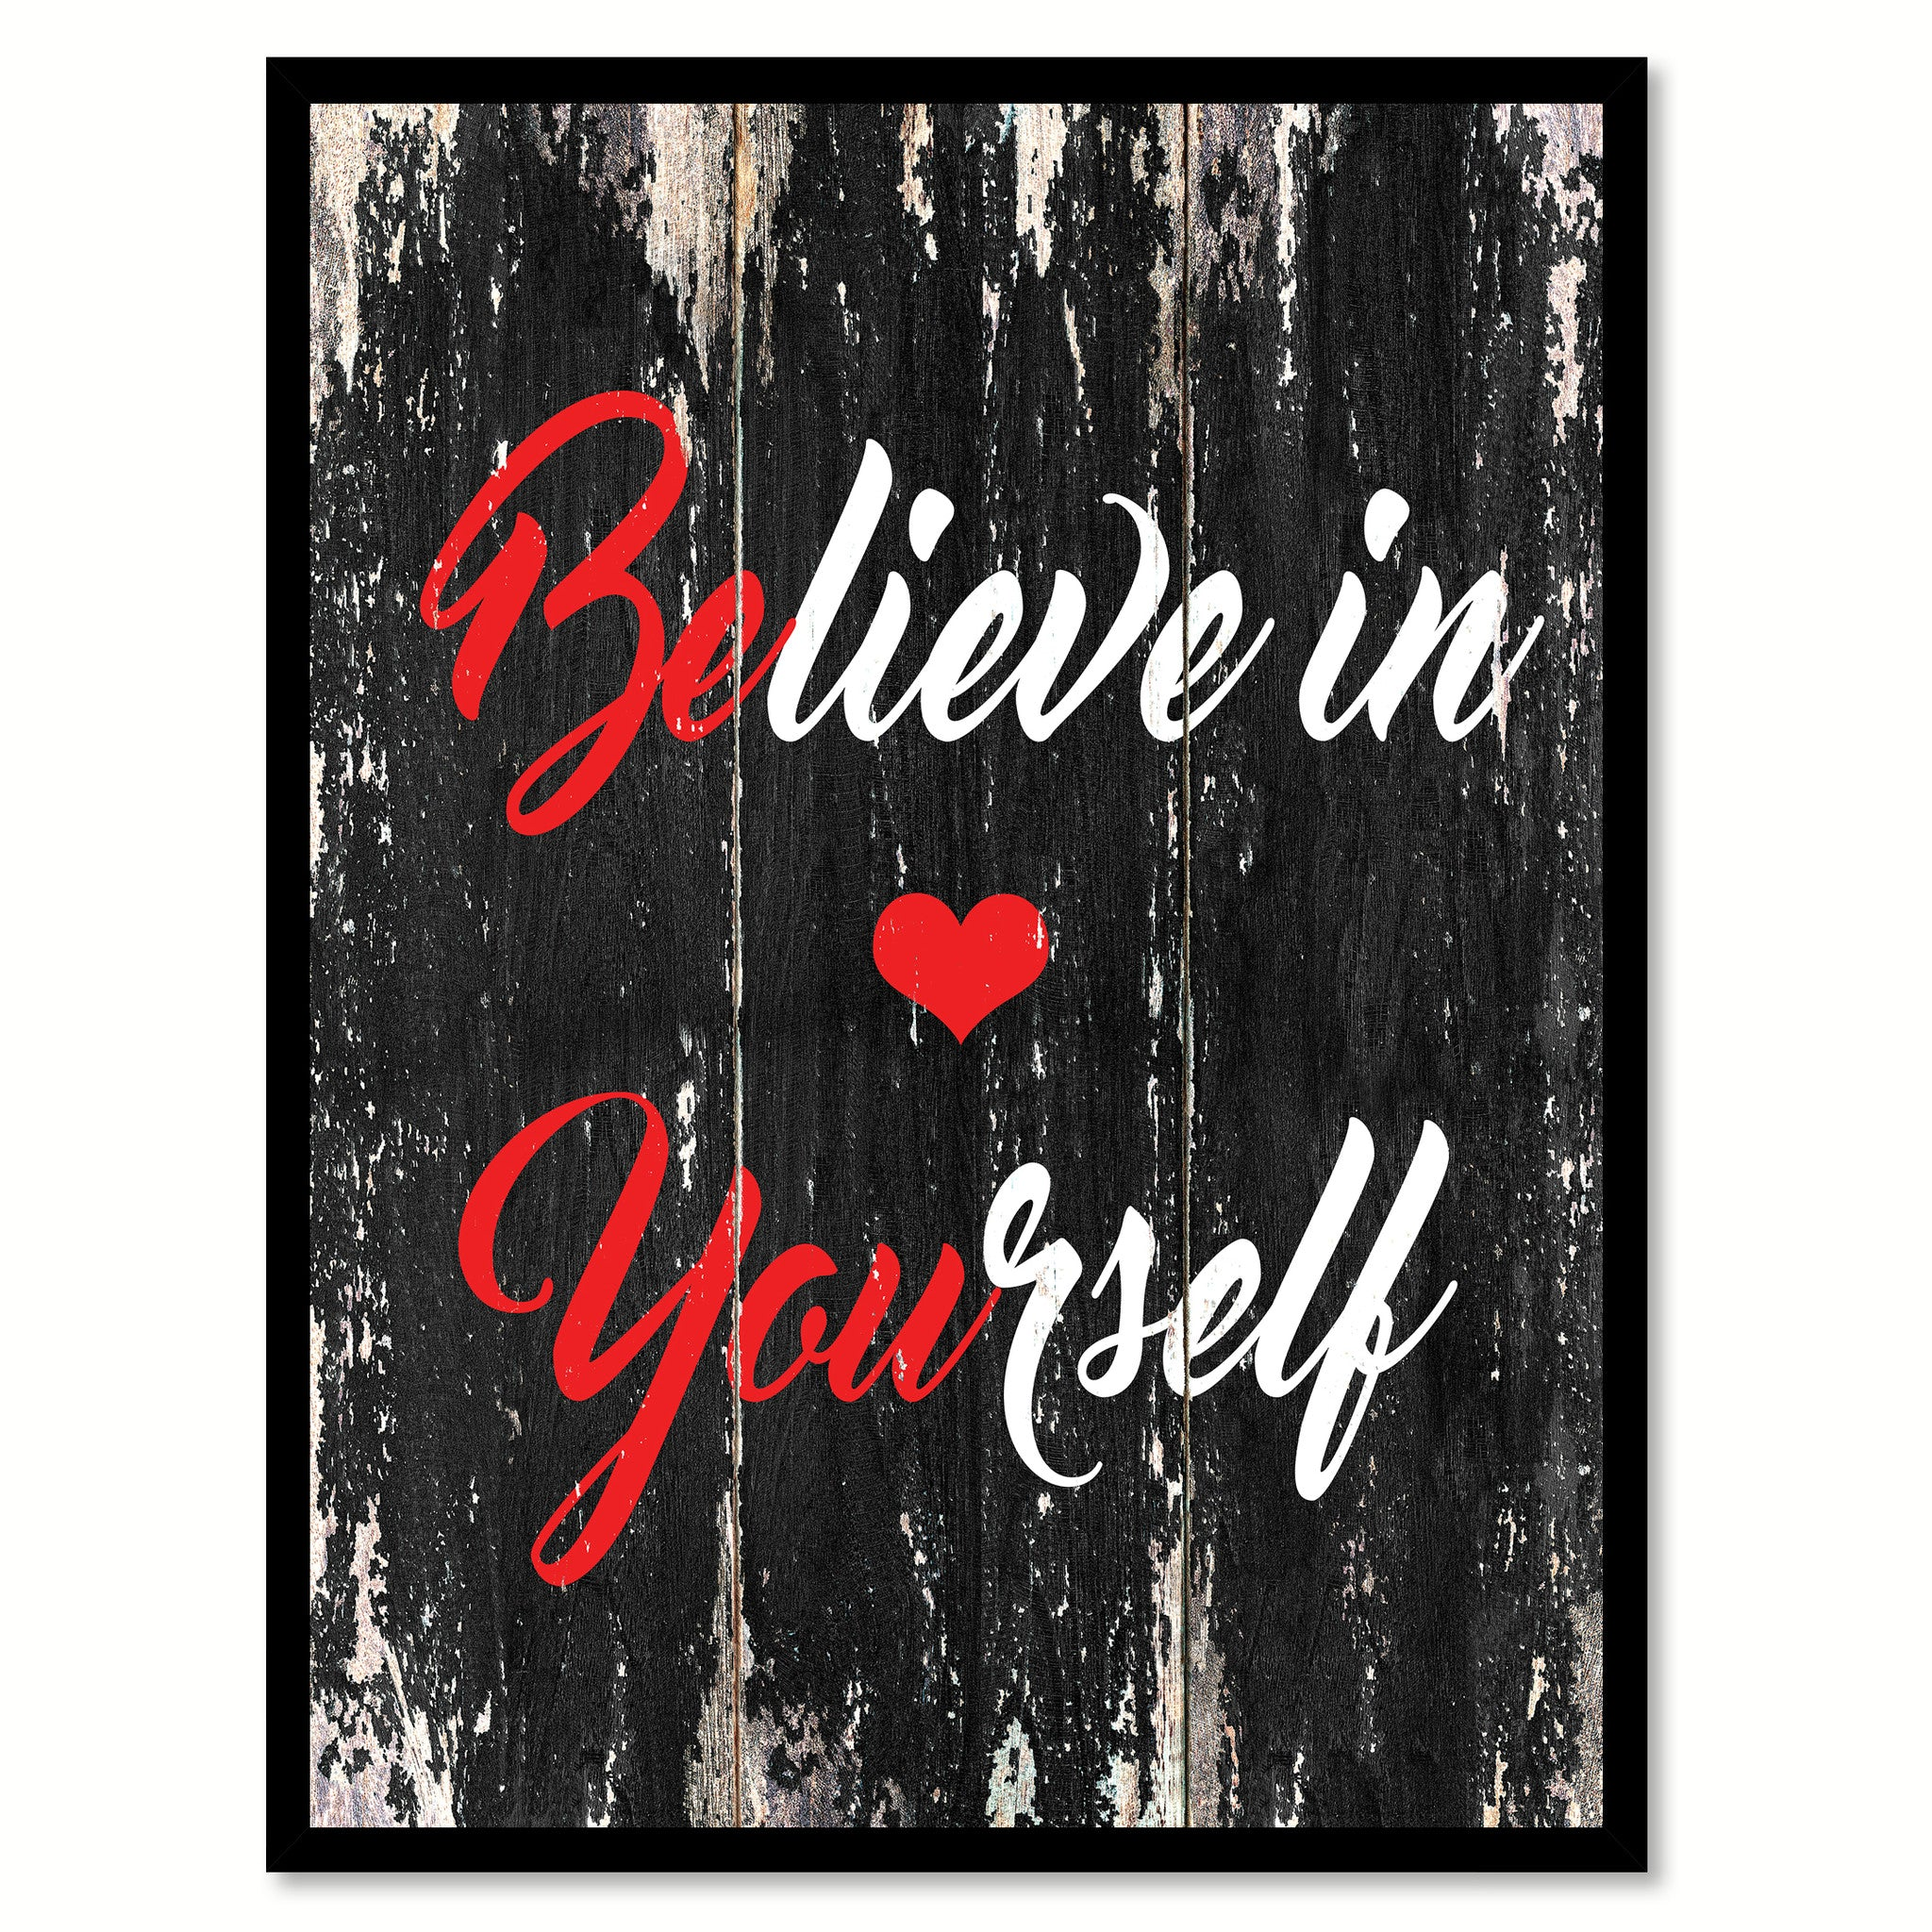 Believe in yourself Motivational Quote Saying Canvas Print with Picture Frame Home Decor Wall Art